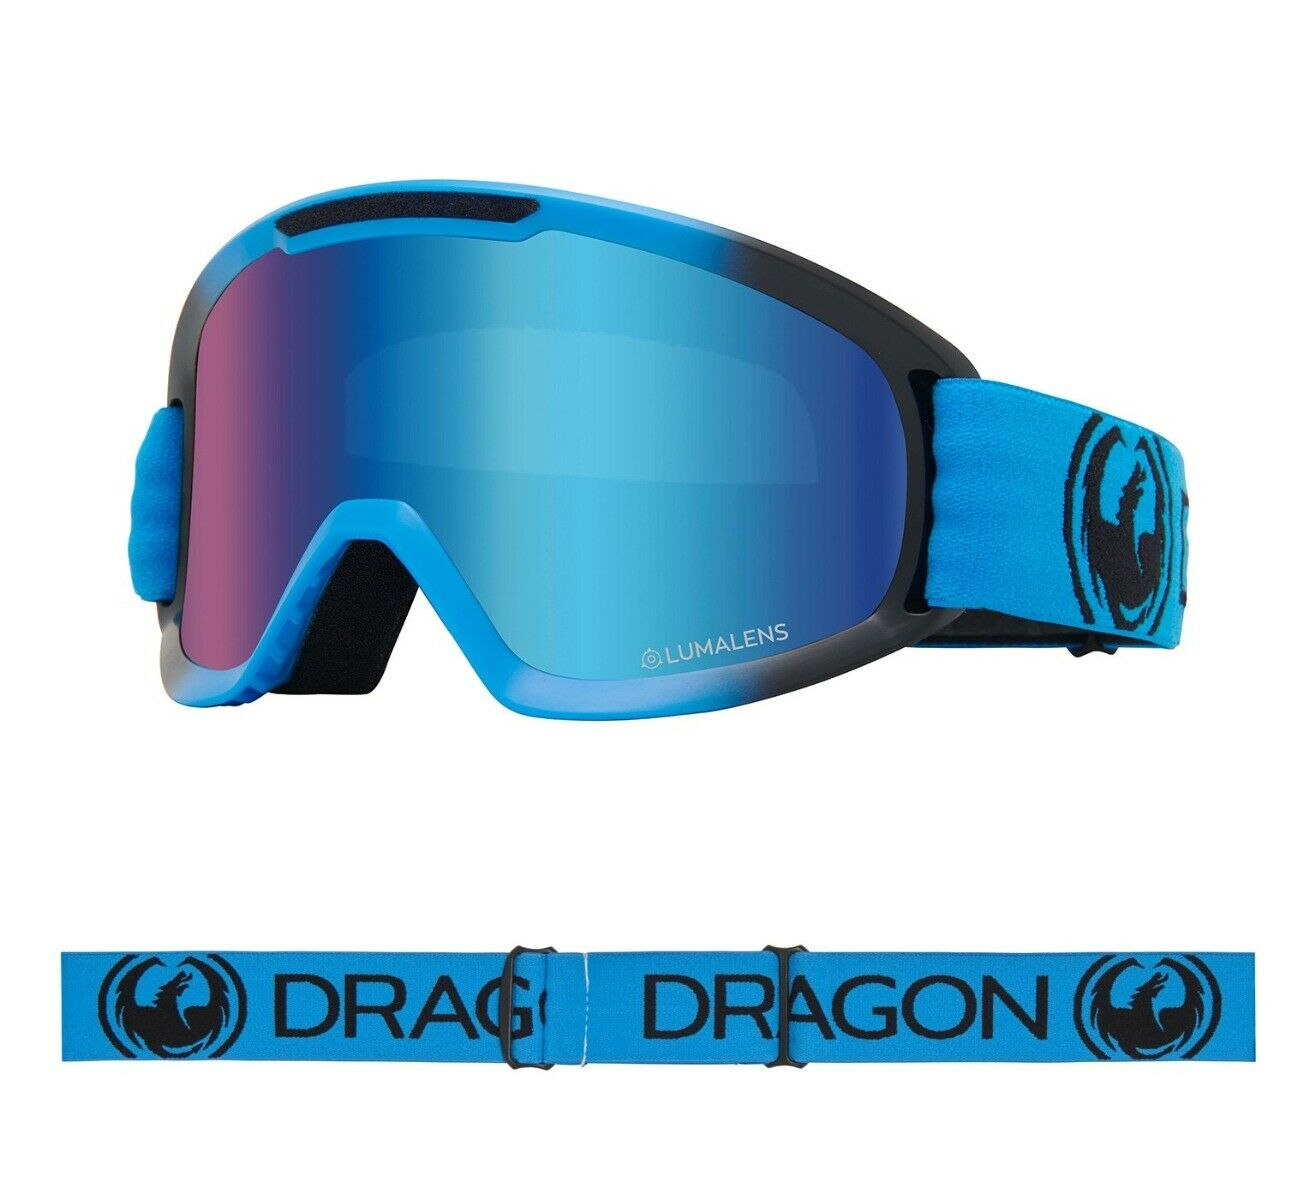 Dragon DX2 Goggles (Blueberry w/Lumalens Blue Ion & Lumalens Amber)